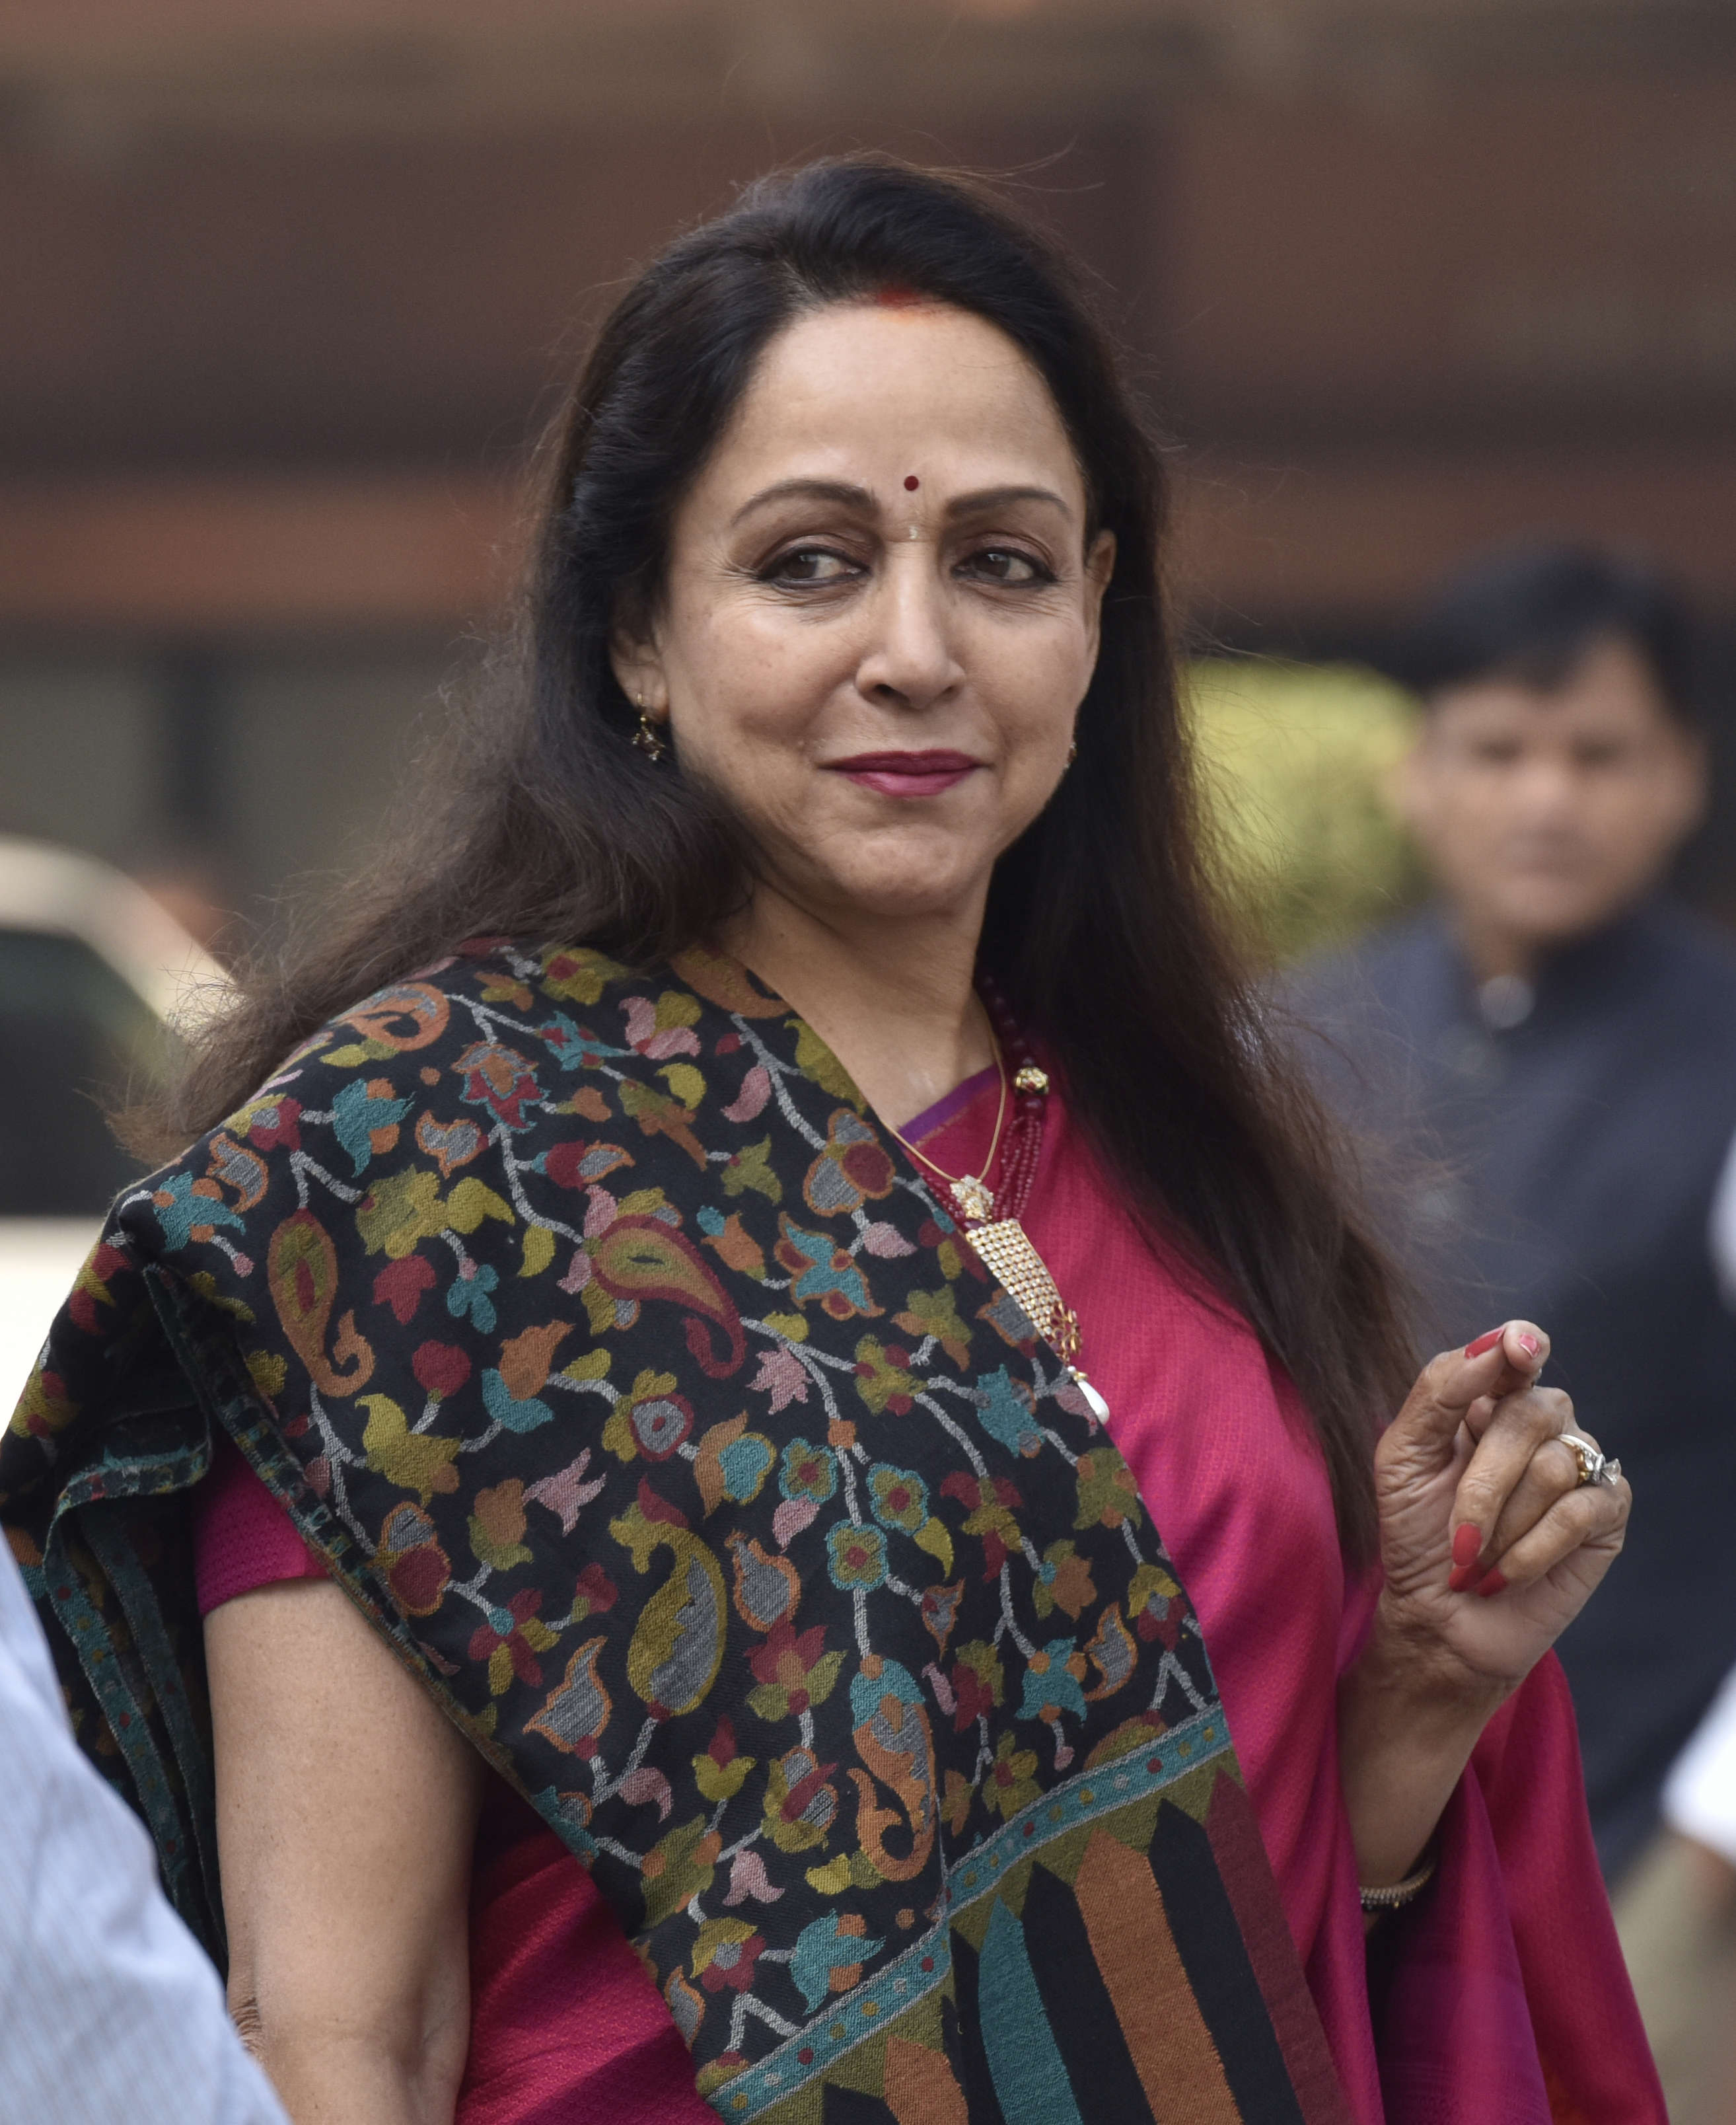 Slide 3 of 31: NEW DELHI, INDIA - DECEMBER 18: BJP MP Hema Malini seen during the winter session in Parliament, on December 18, 2018 in New Delhi, India. Lok Sabha proceedings lasted barely for an hour as Speaker Sumitra Mahajan adjourned the House for the day amid slogan-shouting and protests by treasury and opposition benches over a range of issues, including Rafale deal. (Photo by Sanjeev Verma/Hindustan Times via Getty Images)